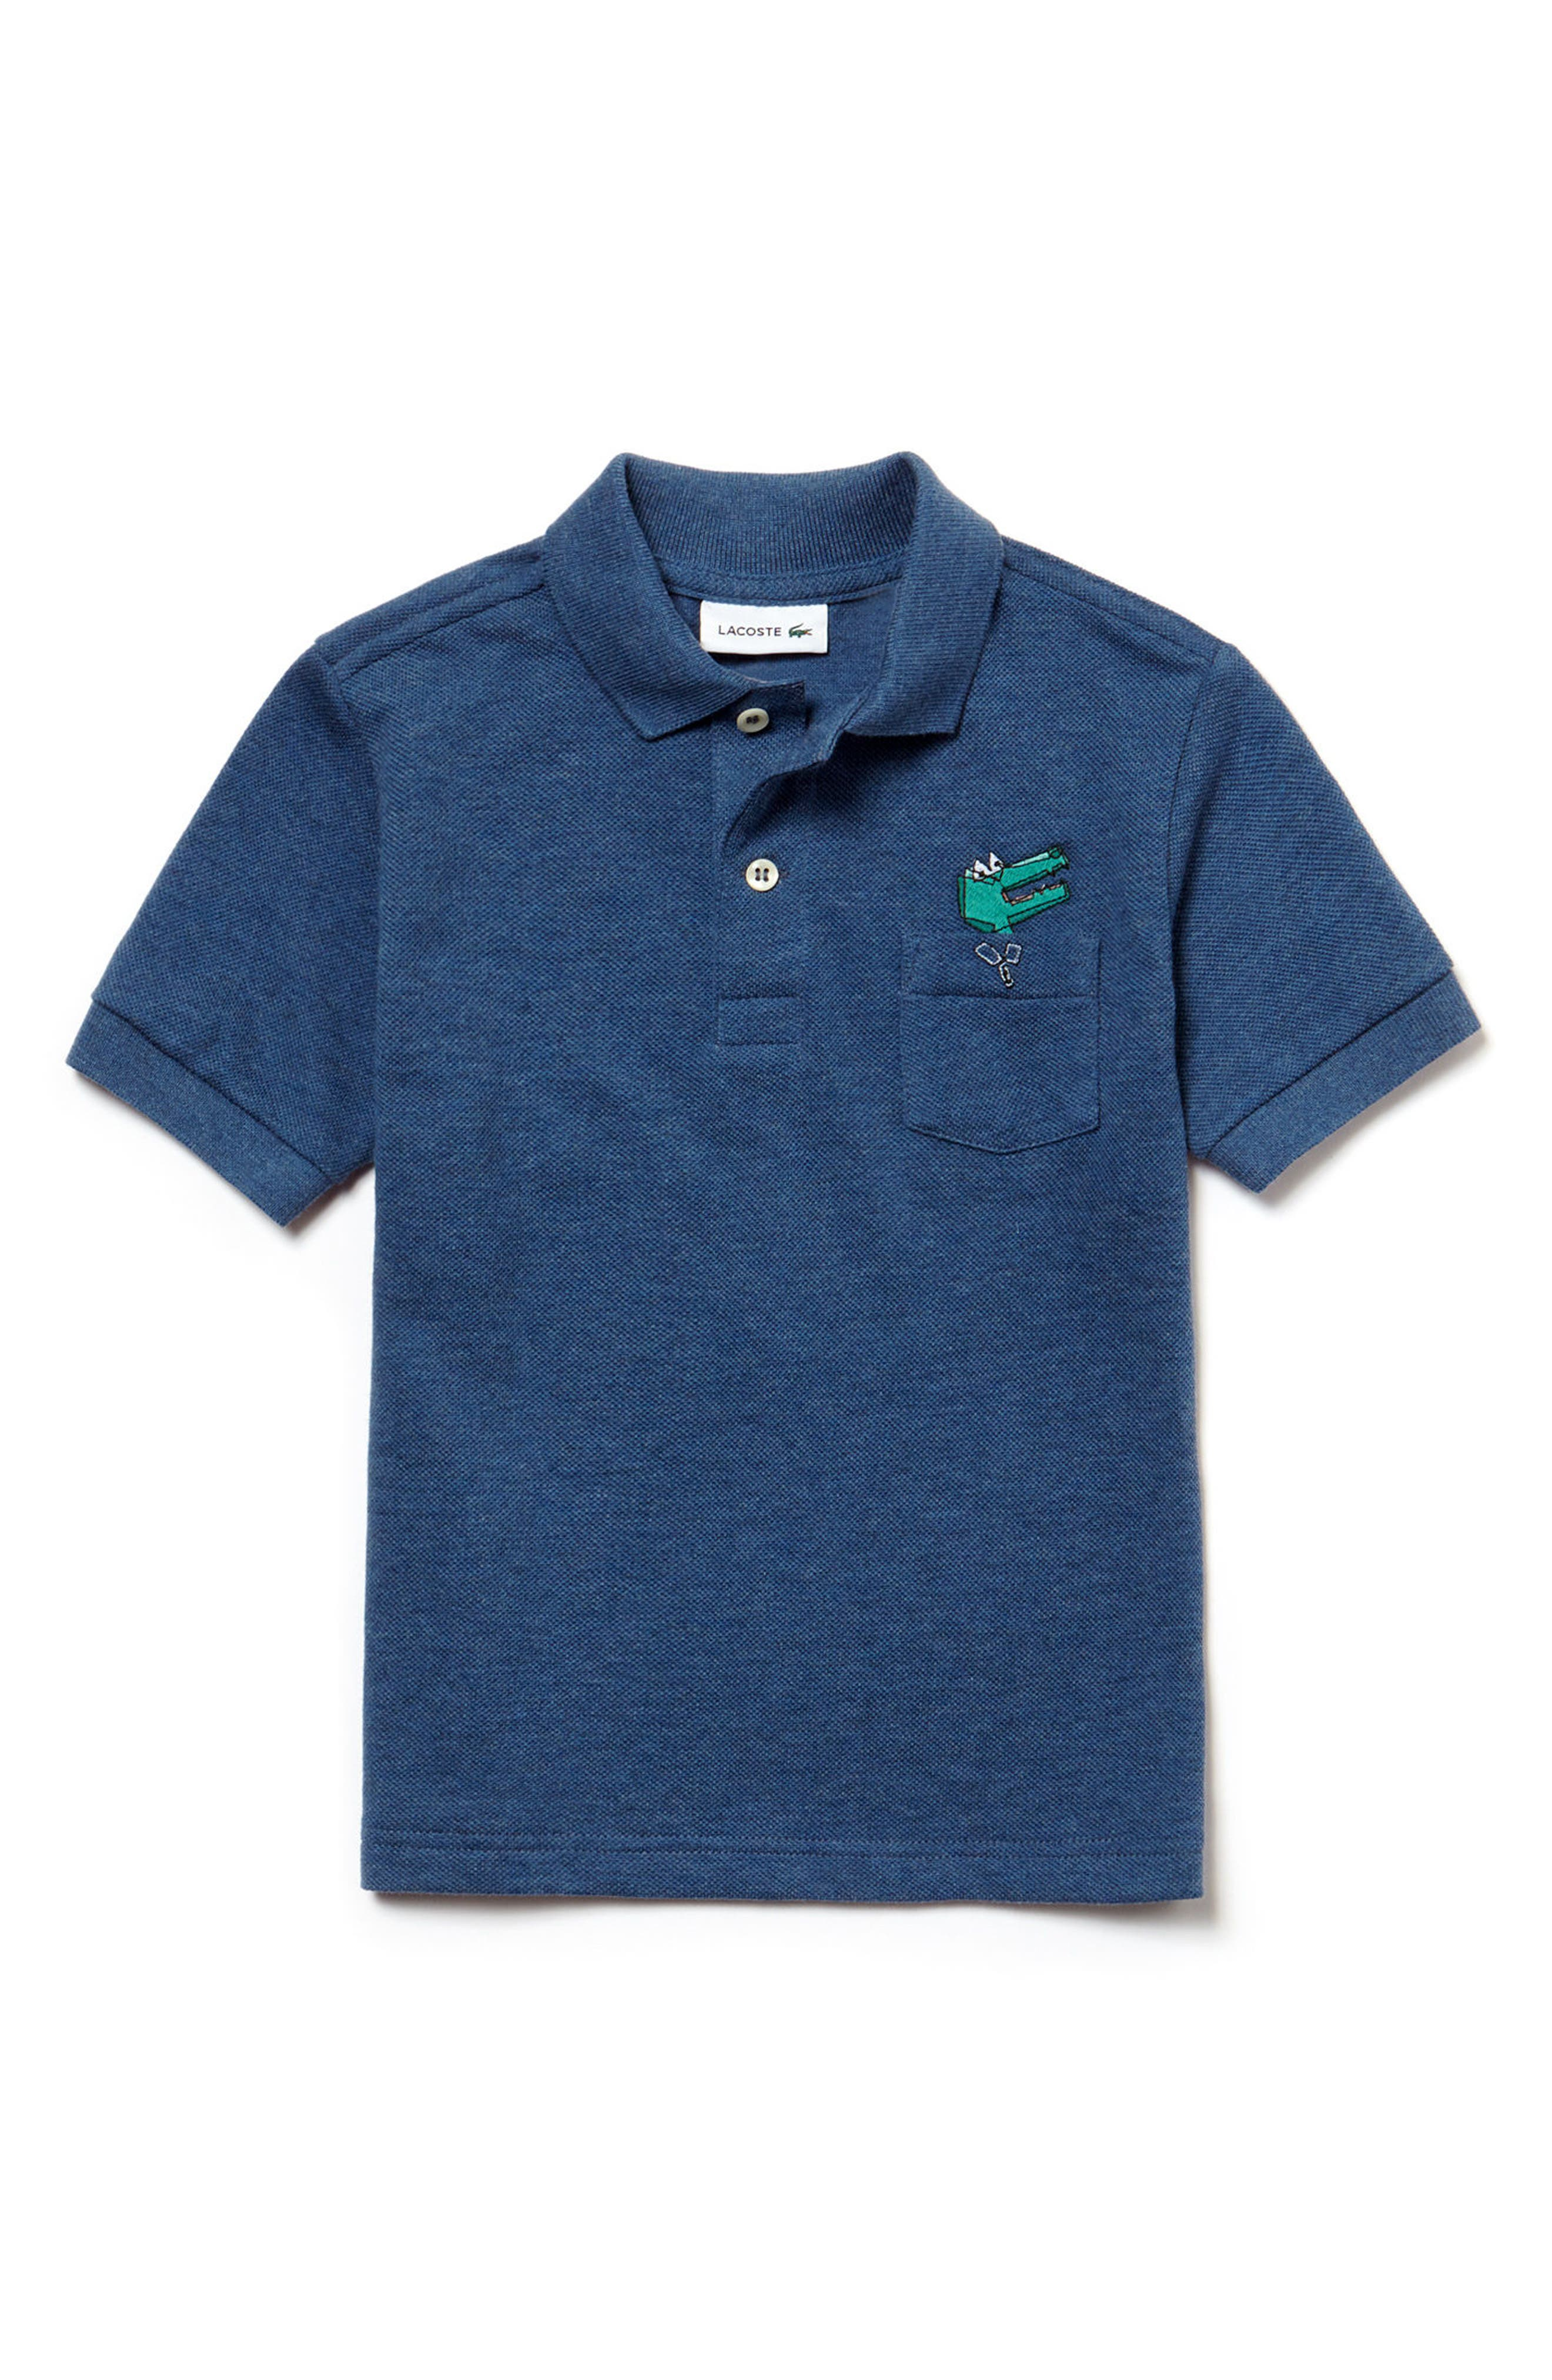 Crocoline Croc Polo,                         Main,                         color, Elysee Chine